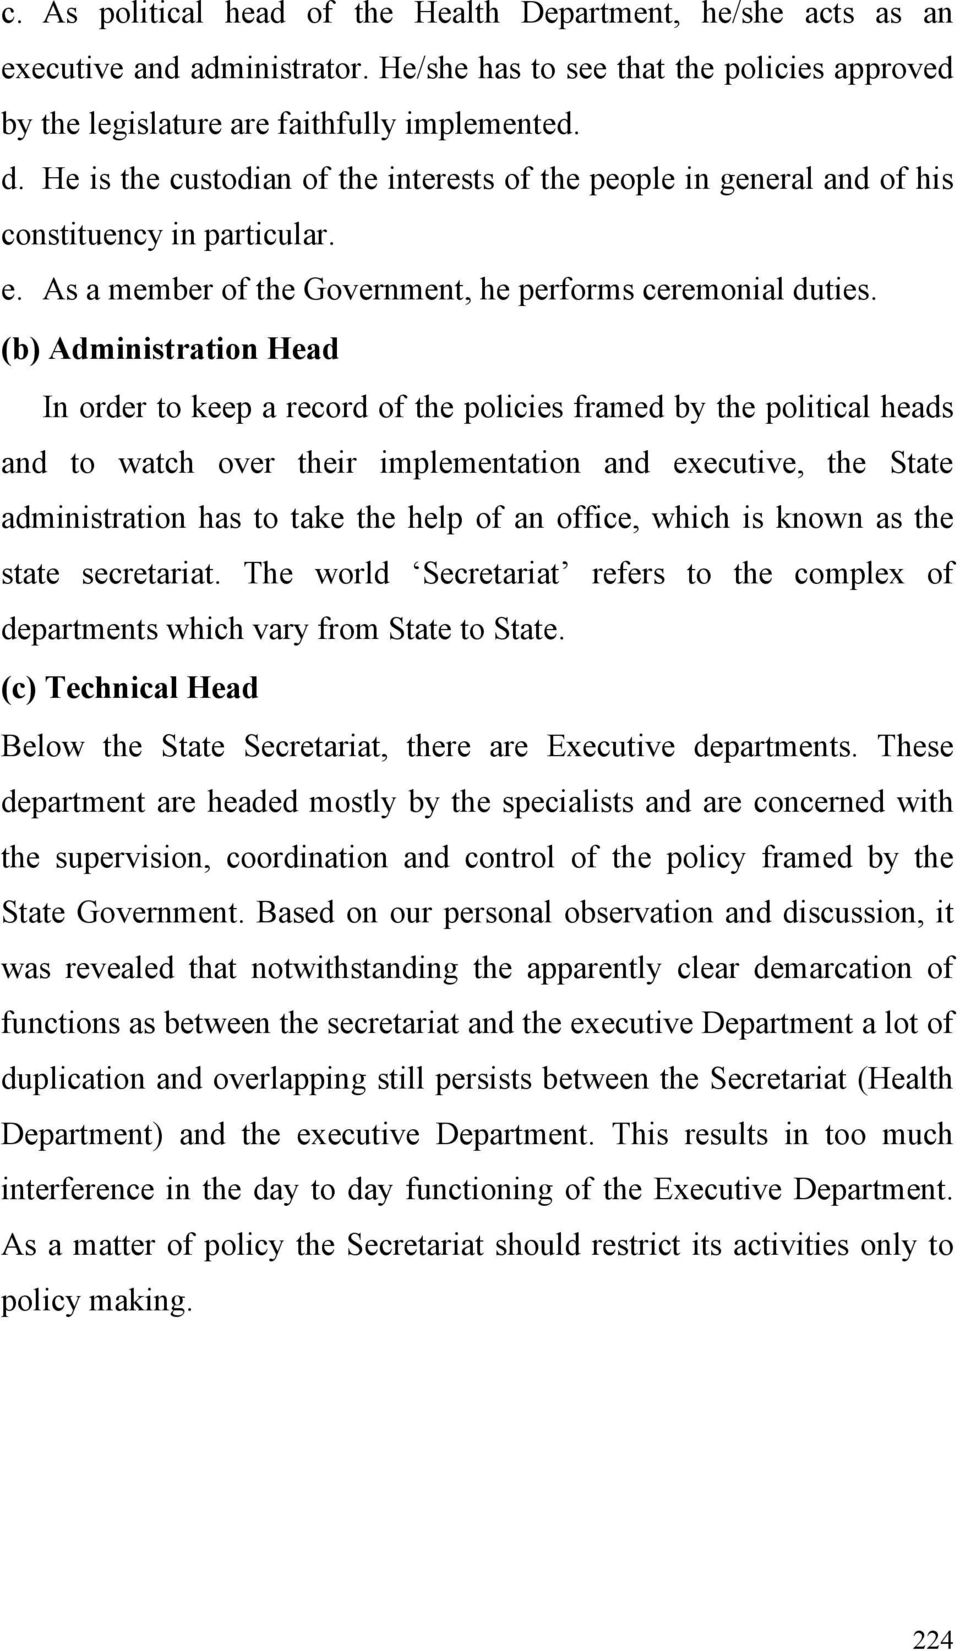 (b) Administration Head In order to keep a record of the policies framed by the political heads and to watch over their implementation and executive, the State administration has to take the help of